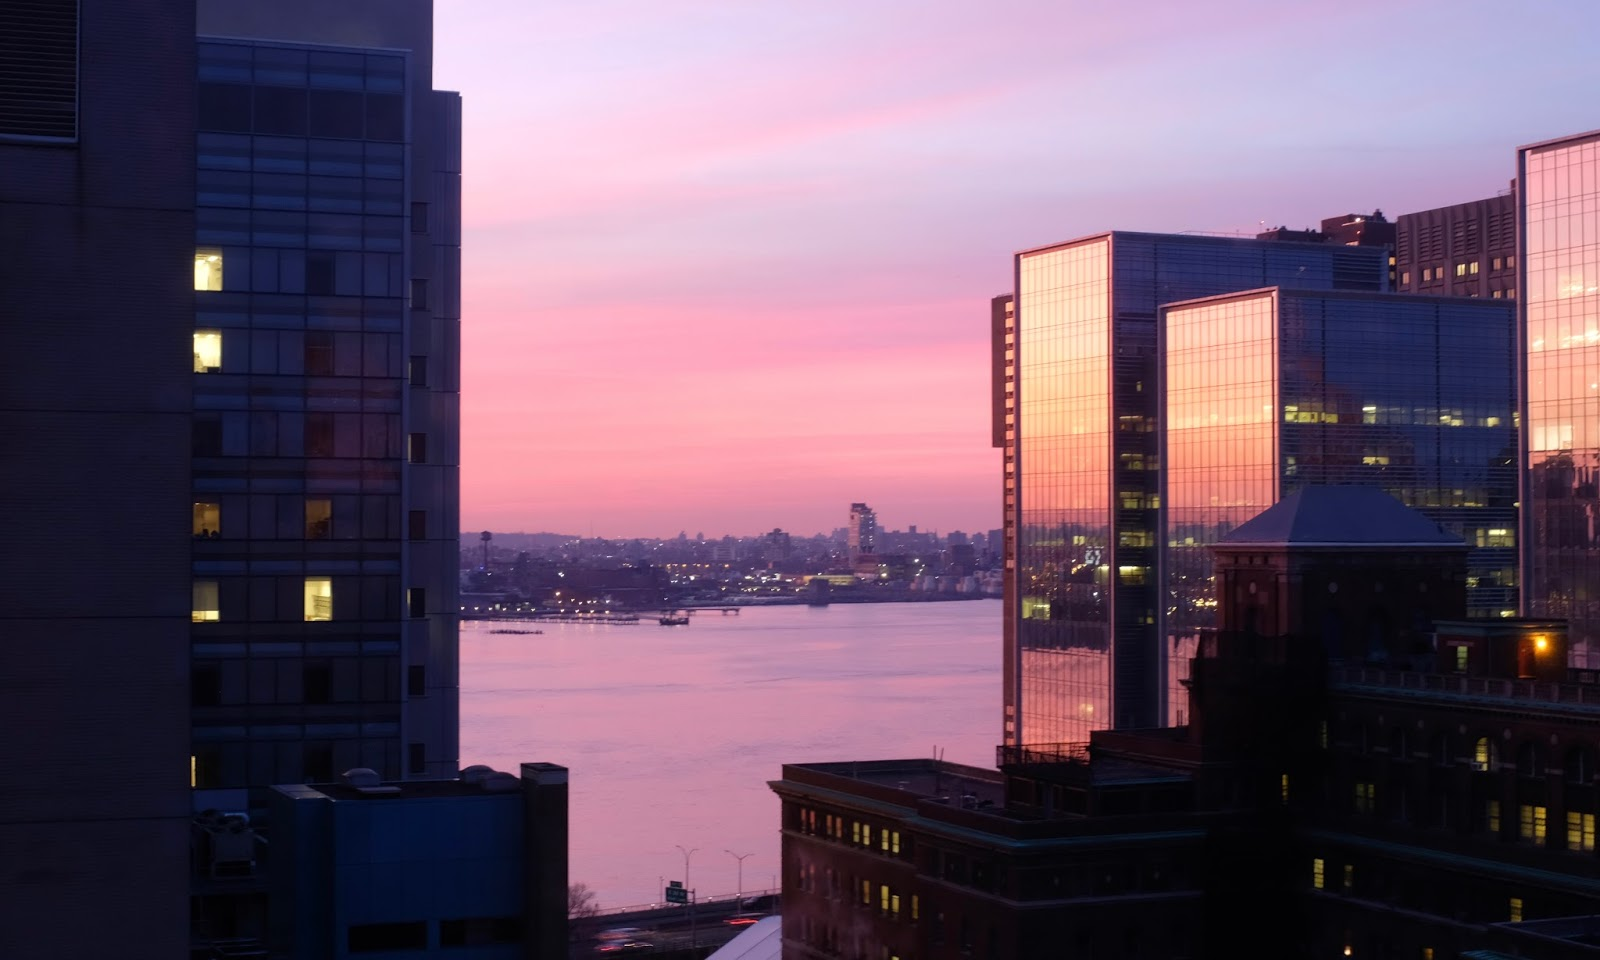 Normally The View From Our Apartment Facing East River In New York City Is A Lovely Warm Yellow Light At Sunrise That Bathes Golden